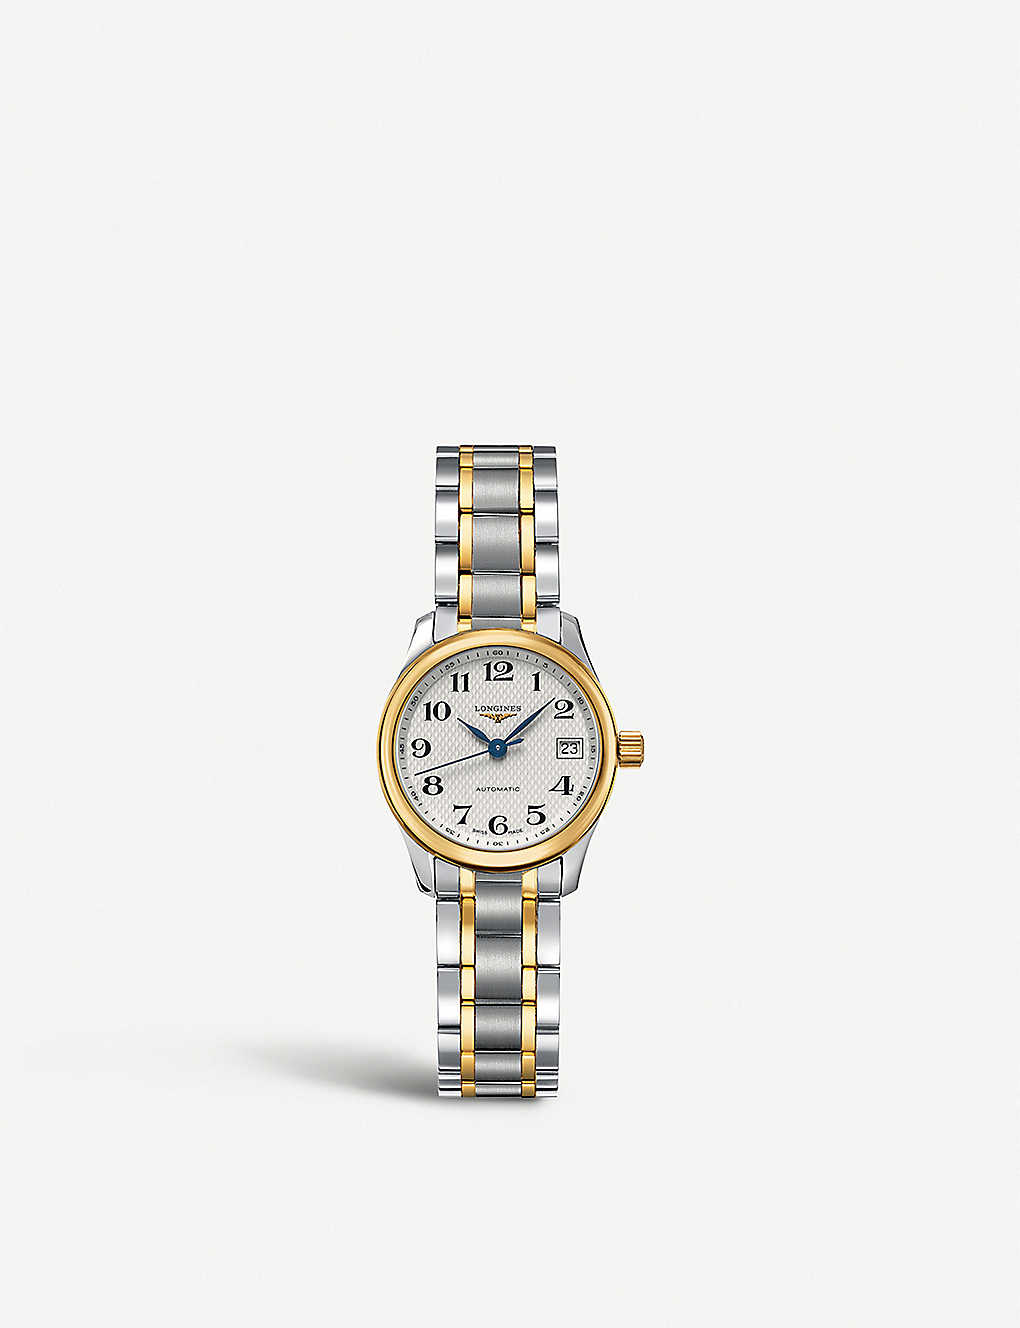 LONGINES: L2.128.5.78.7 Master 18-carat gold and stainless steel watch